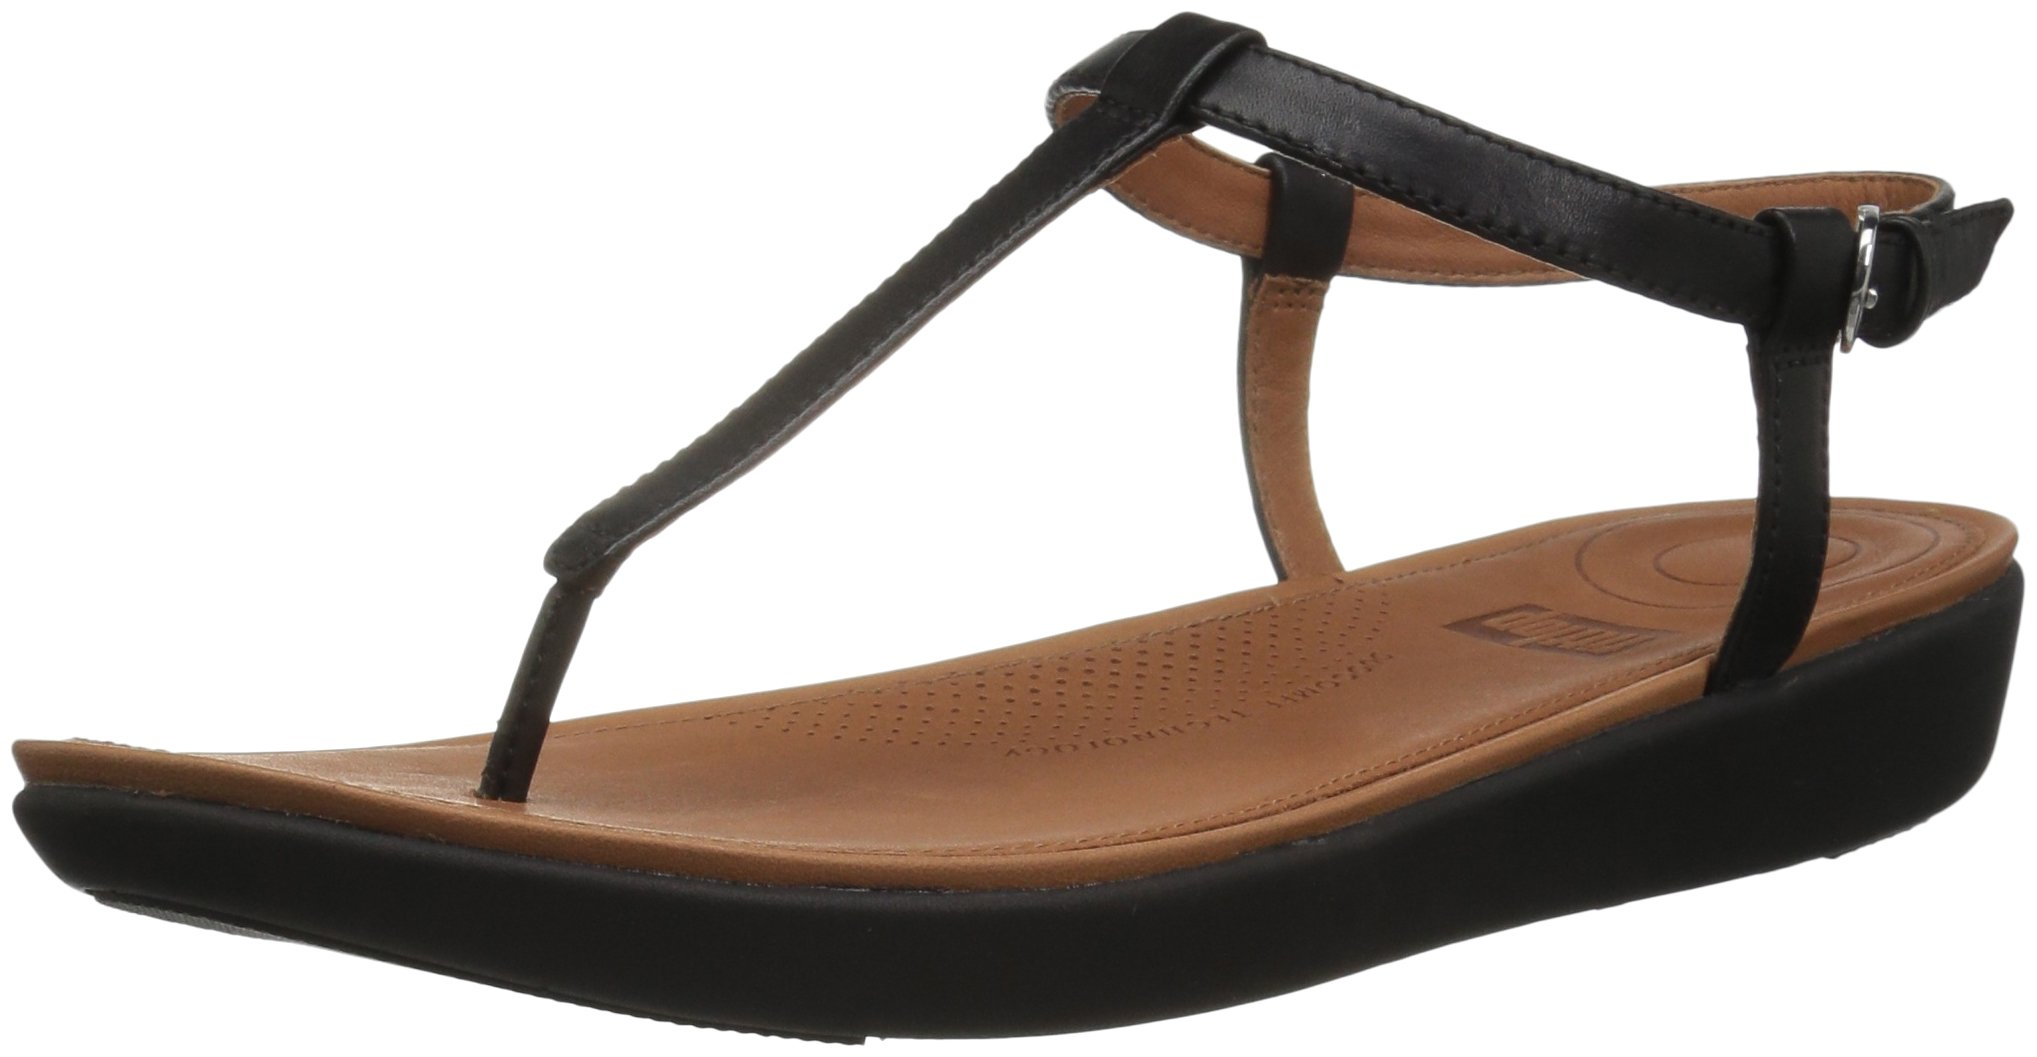 FITFLOP Women's Tia Toe-Thong Flat Sandal, Black, 8 M US by FITFLOP